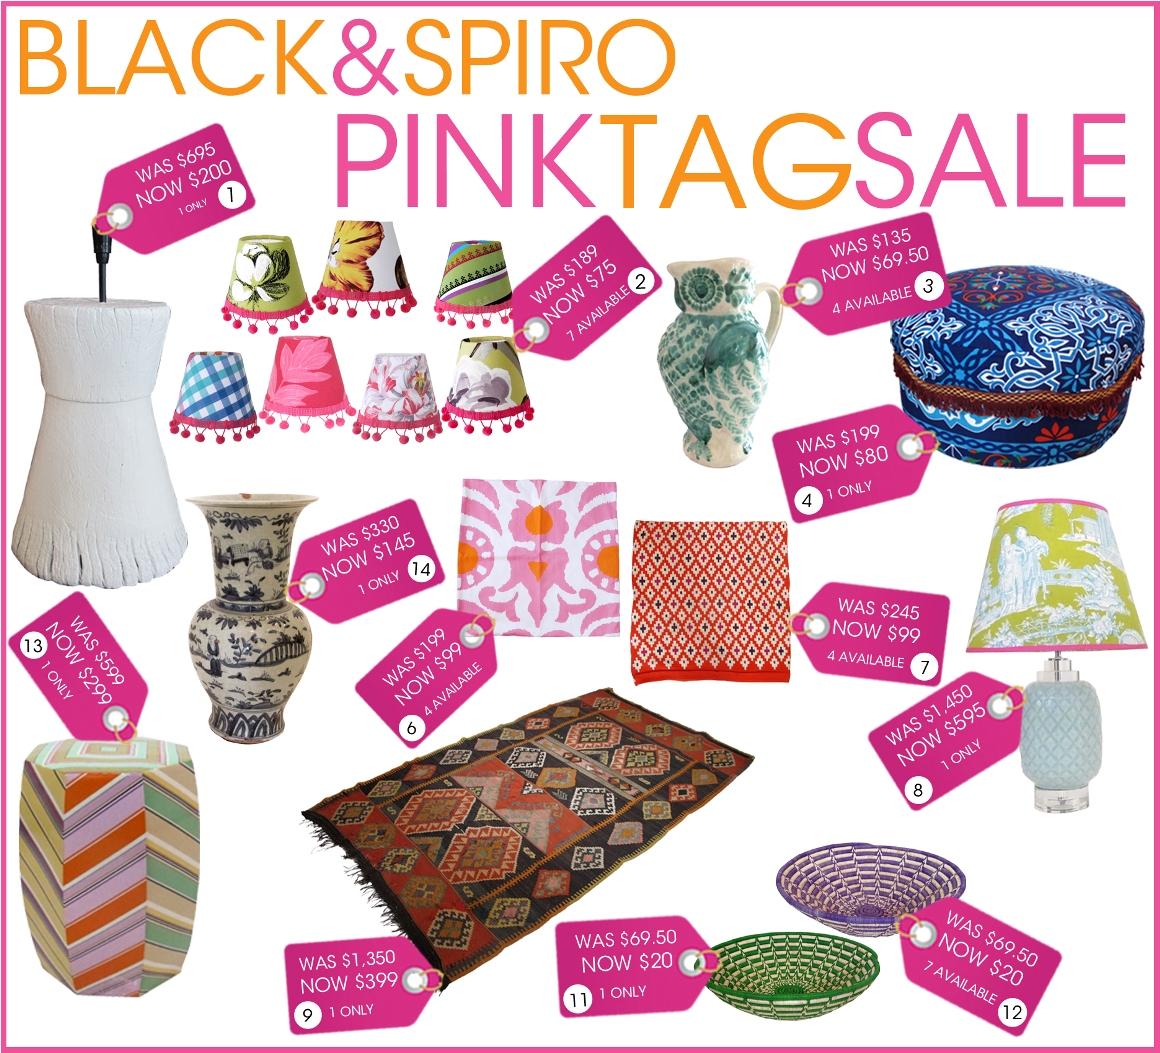 Exciting Black Spiro Pink Tag